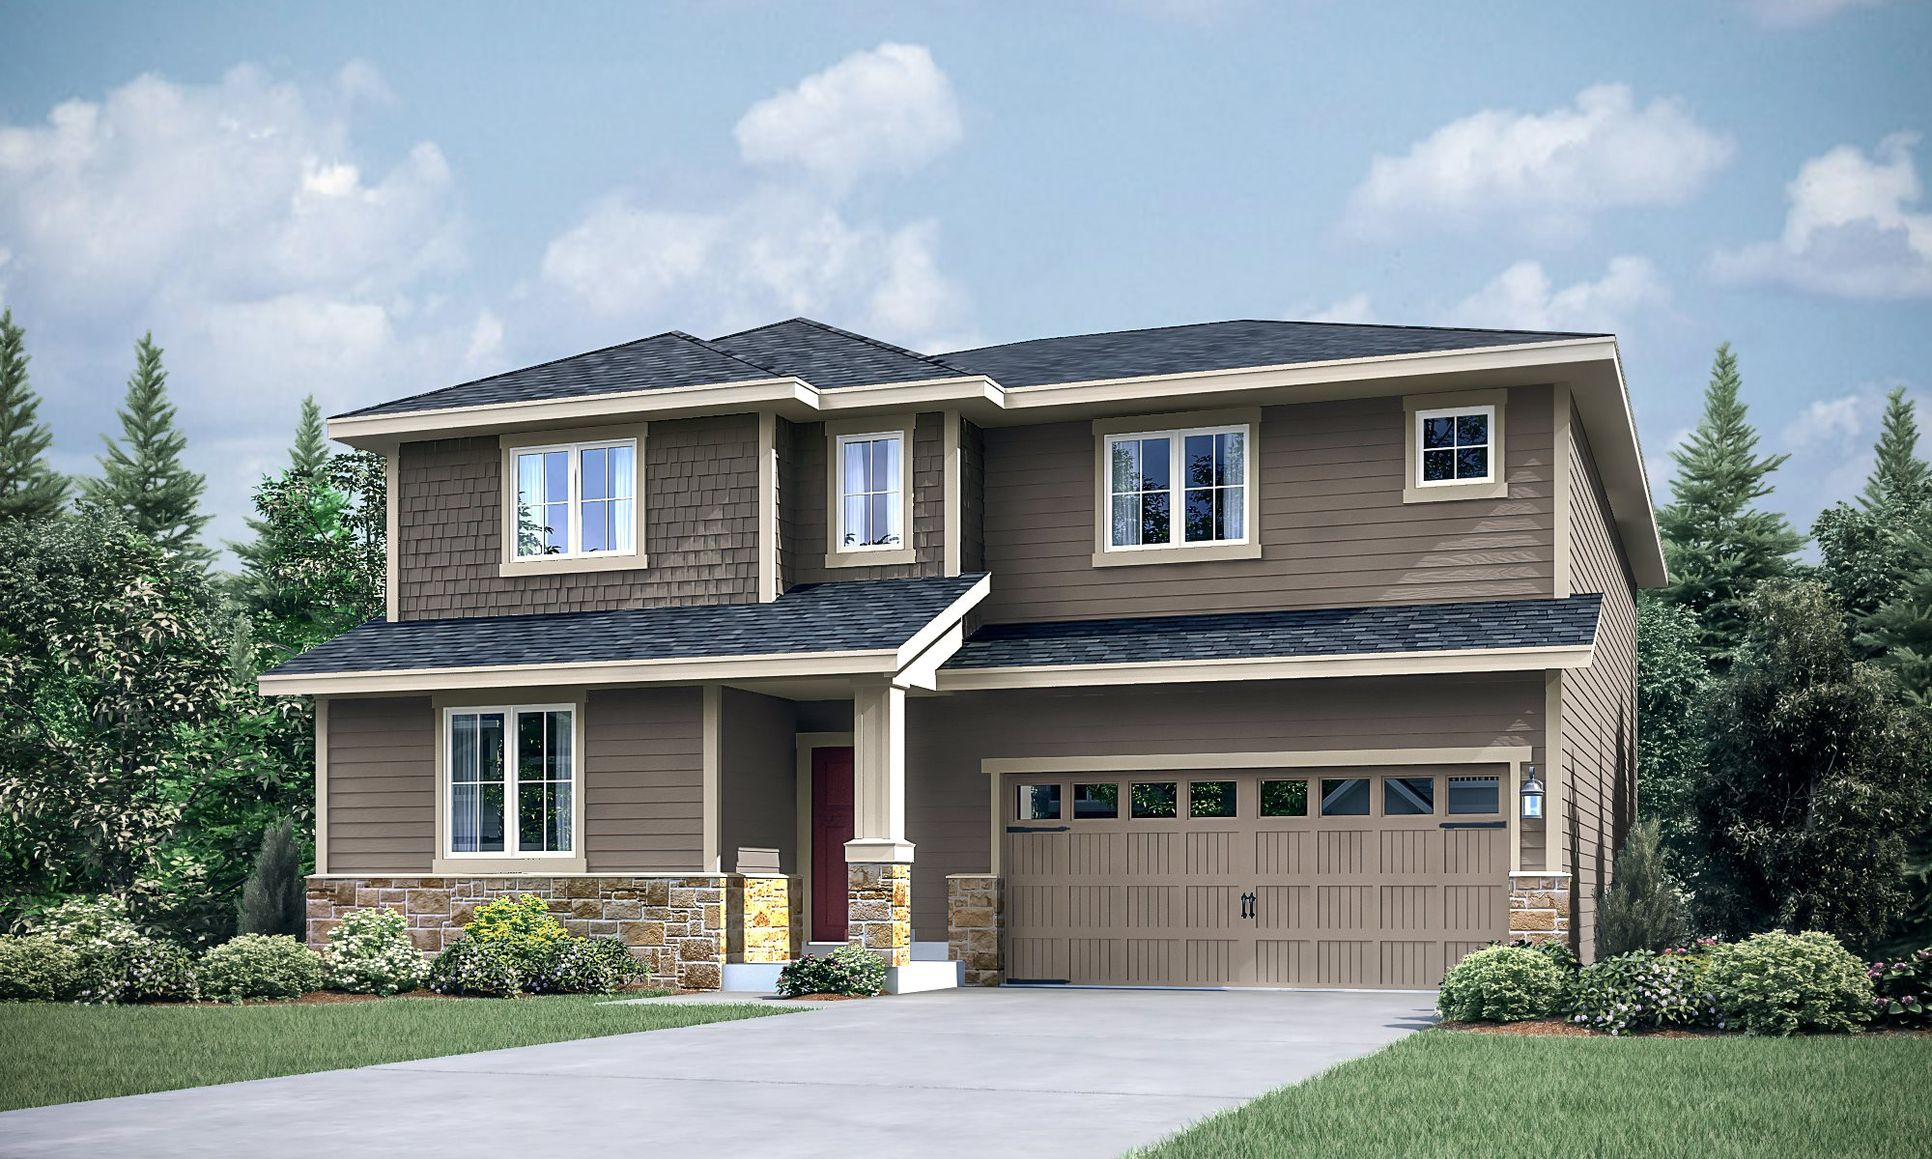 The Carnation home, Elevation C